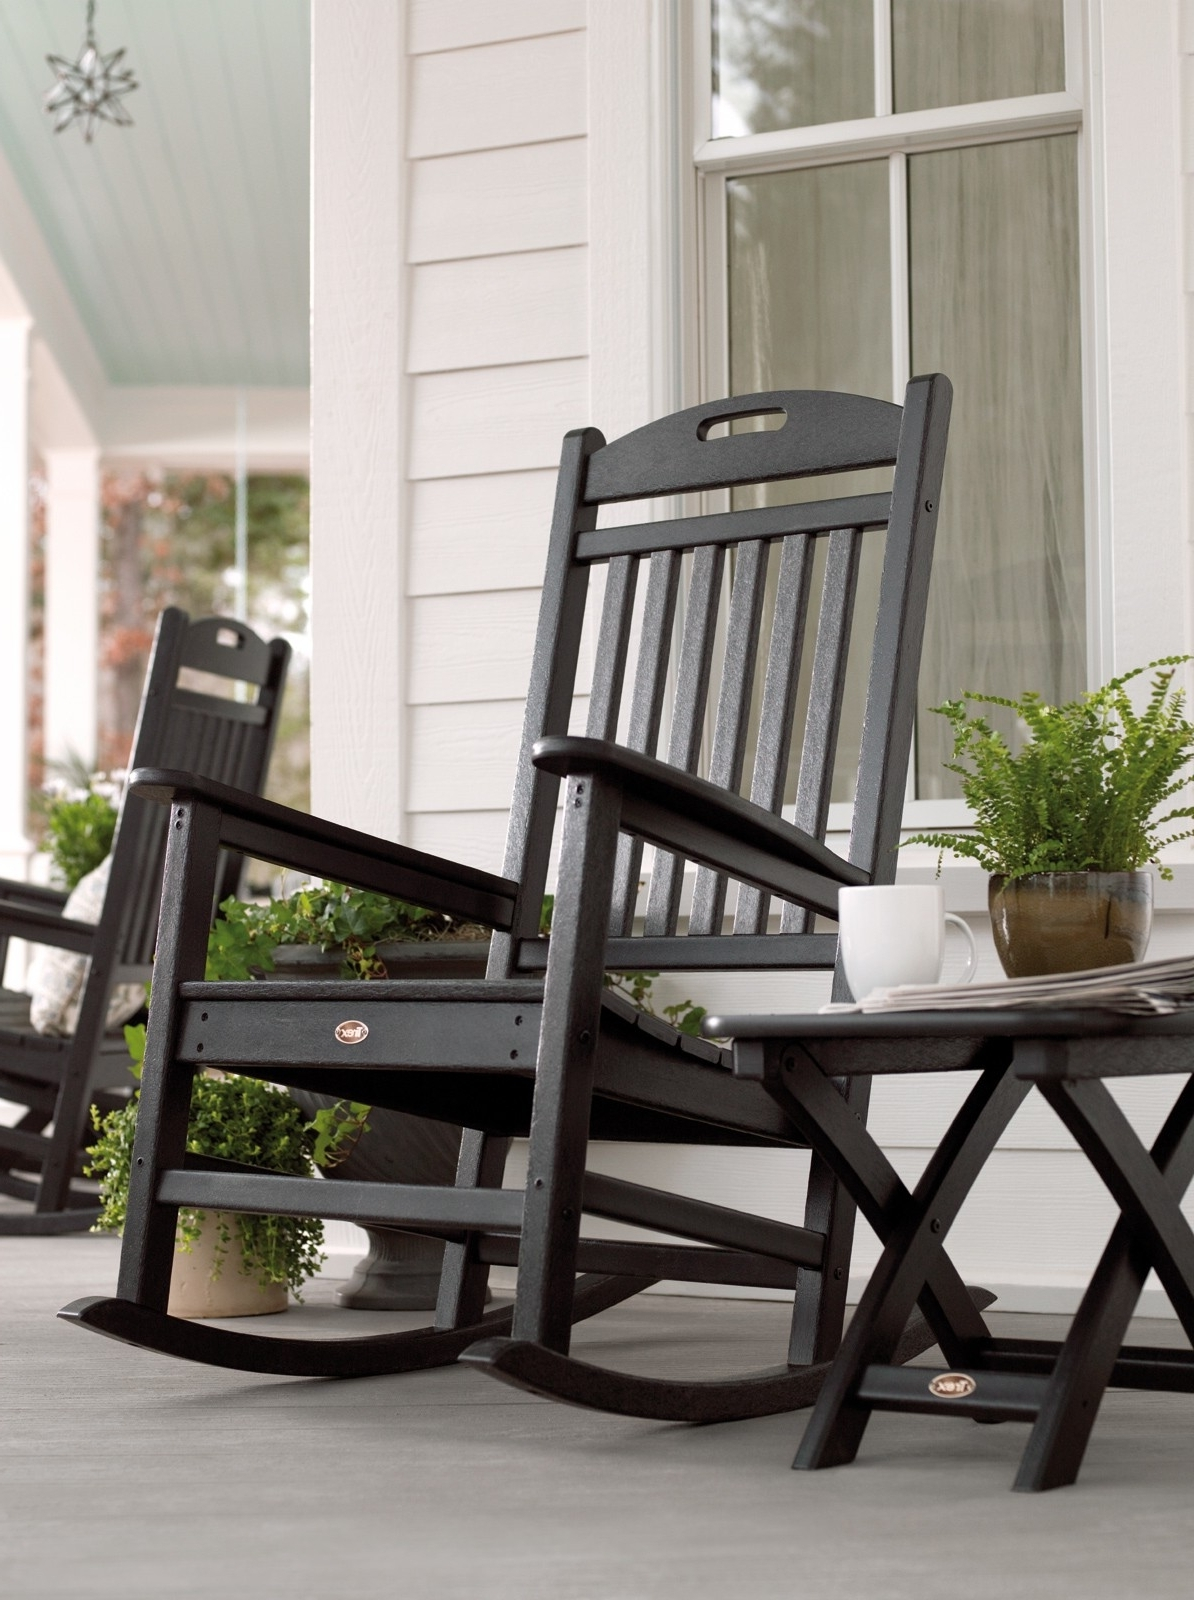 Famous Outdoor Rocking Chairs With Cushions Inside Patio & Garden : Outdoor Rocking Chair Seat Cushions Outdoor Rocking (View 17 of 20)